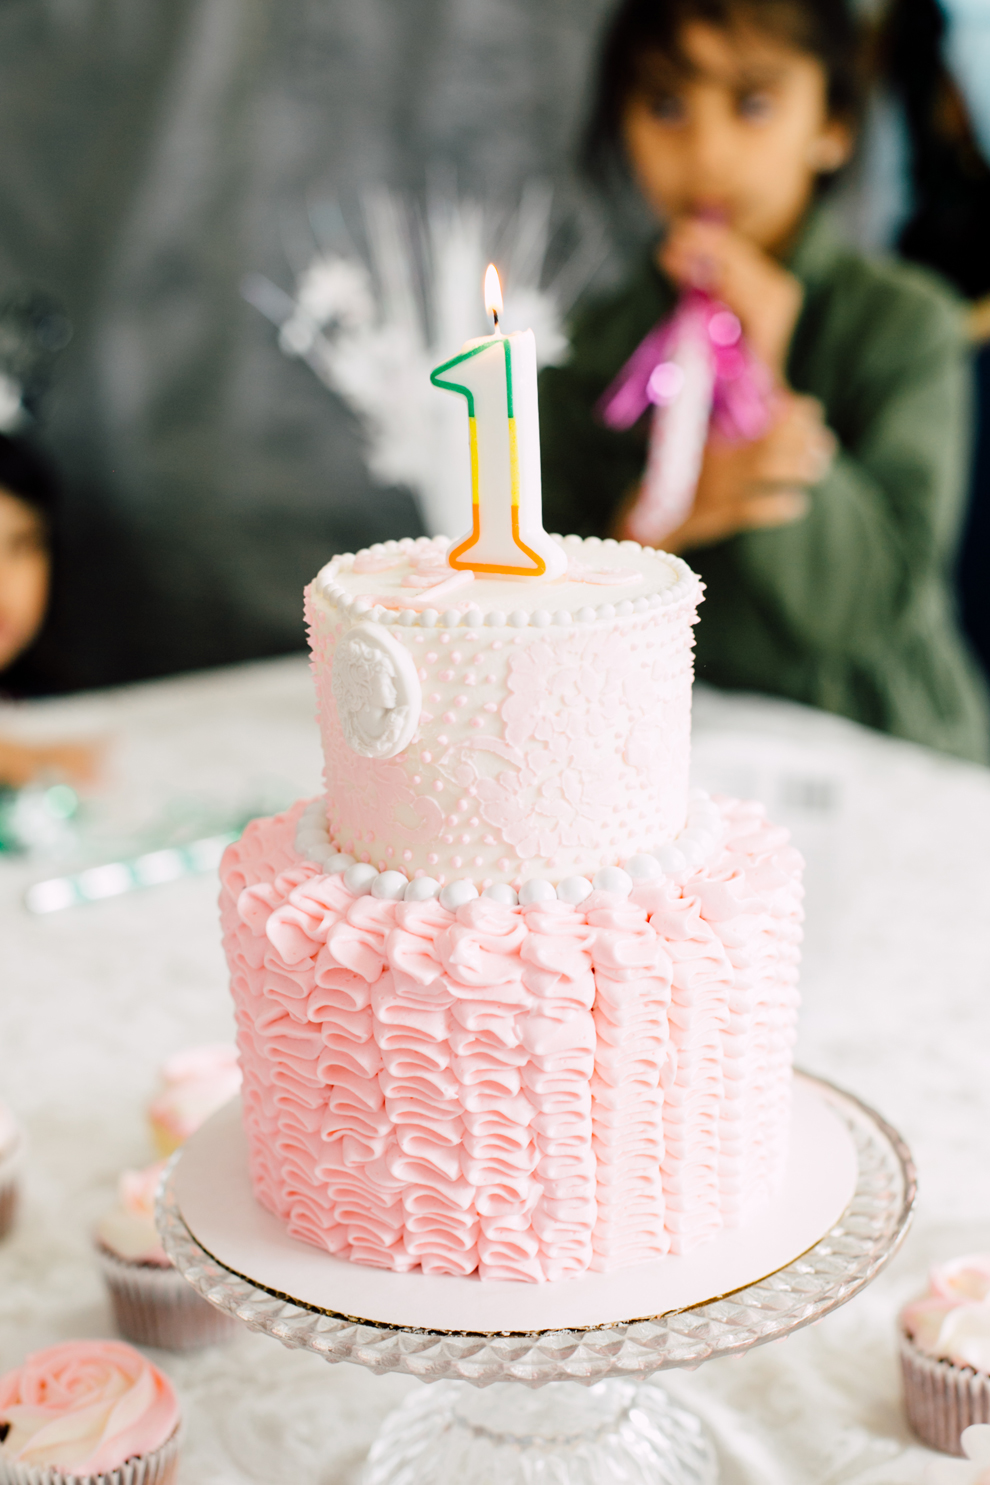 041-one-year-birthday-party-event-photography-lynden-bellingham-katheryn-moran-mira.jpg